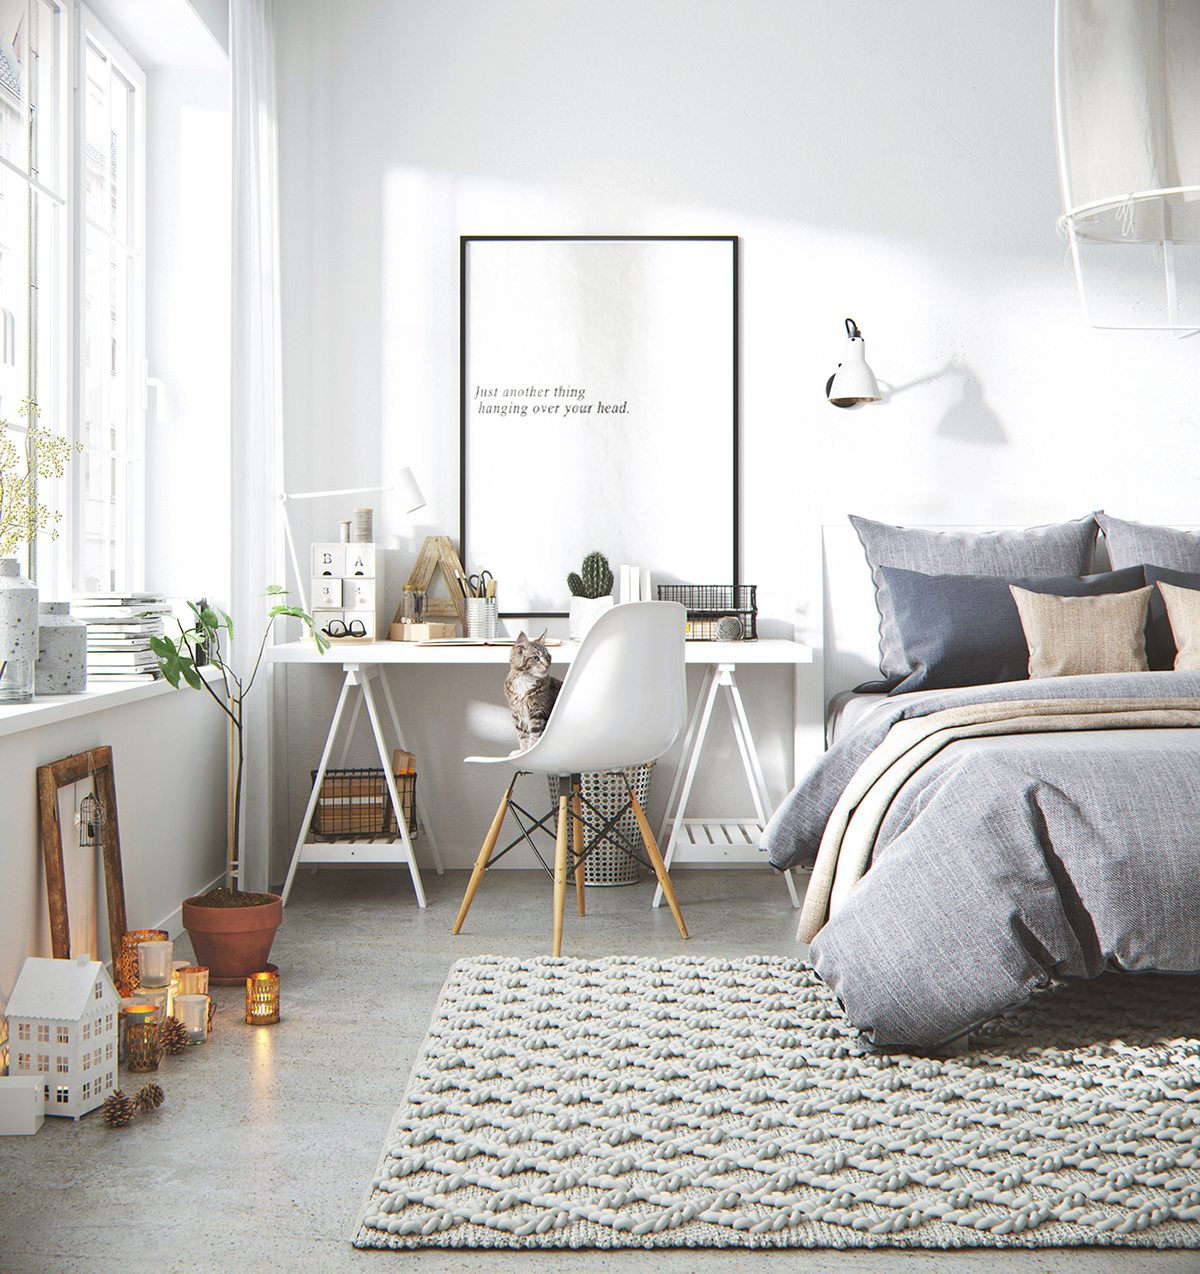 Bright and cheerful 5 beautiful scandinavian inspired - Decoracion nordica salon ...